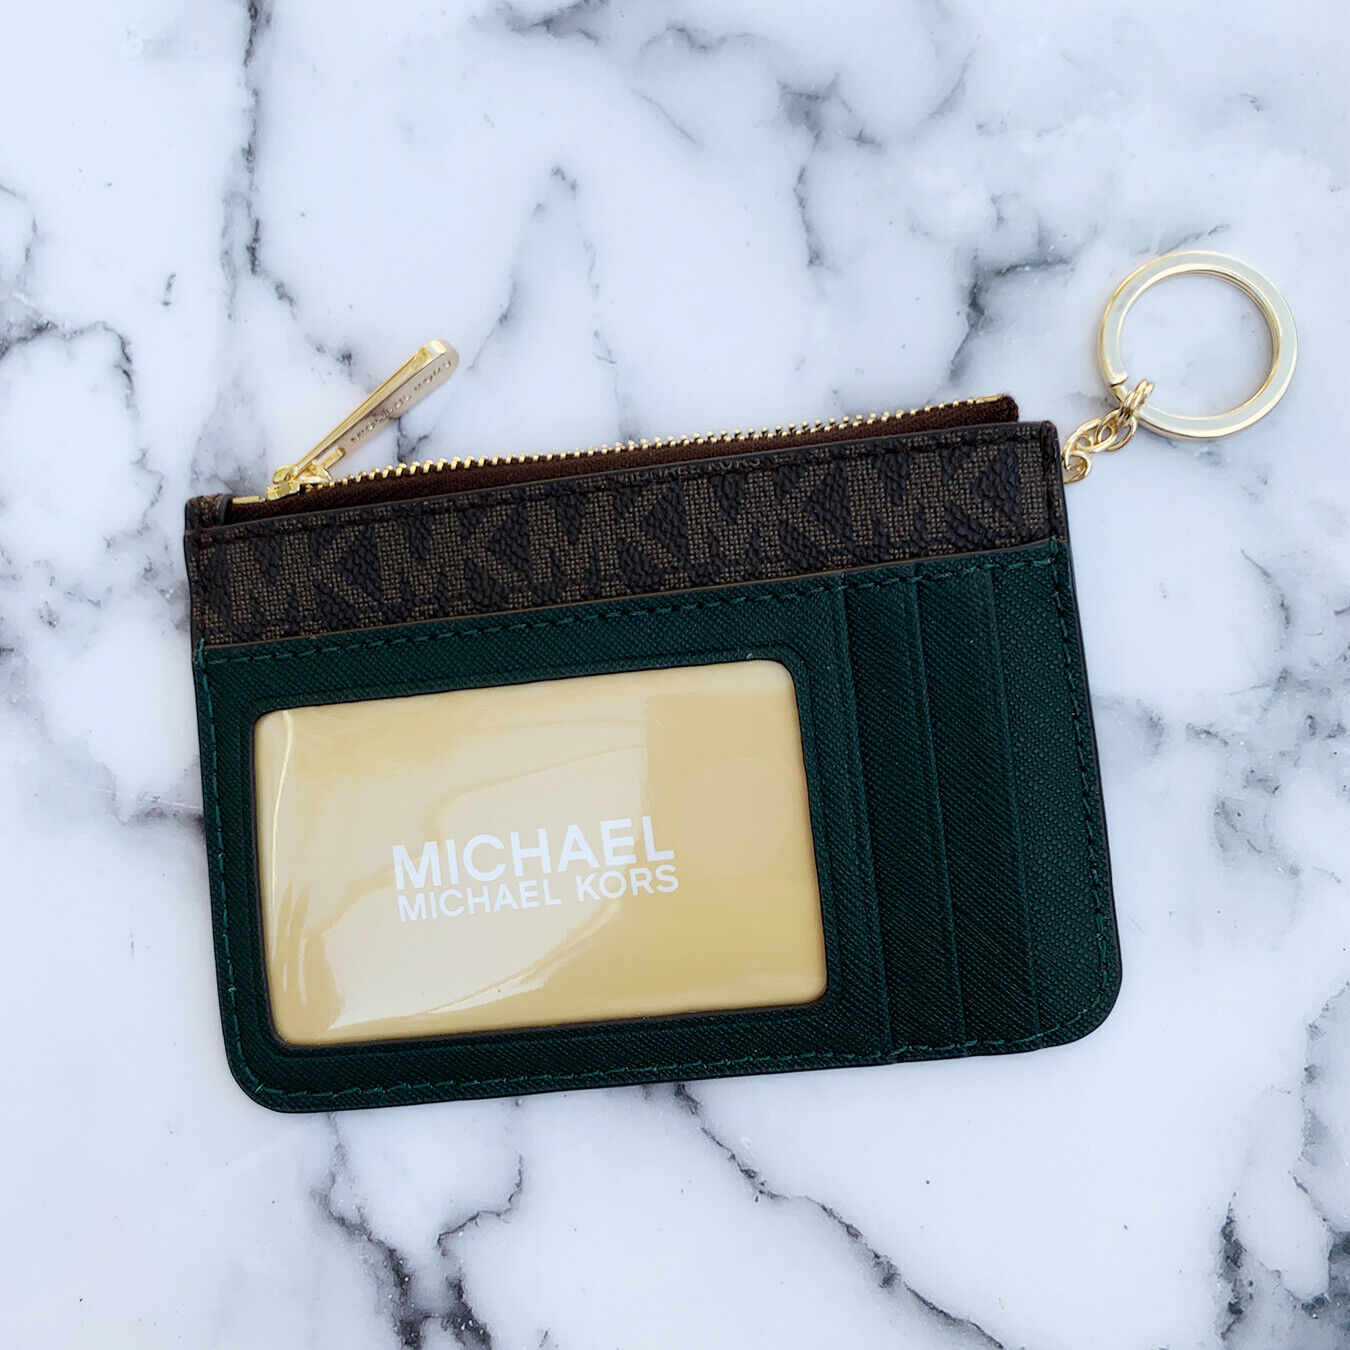 Michael Kors Jet Set Travel Small Top Zip Coin Pouch ID Holder Key Ring Wallet Brown Racing Green